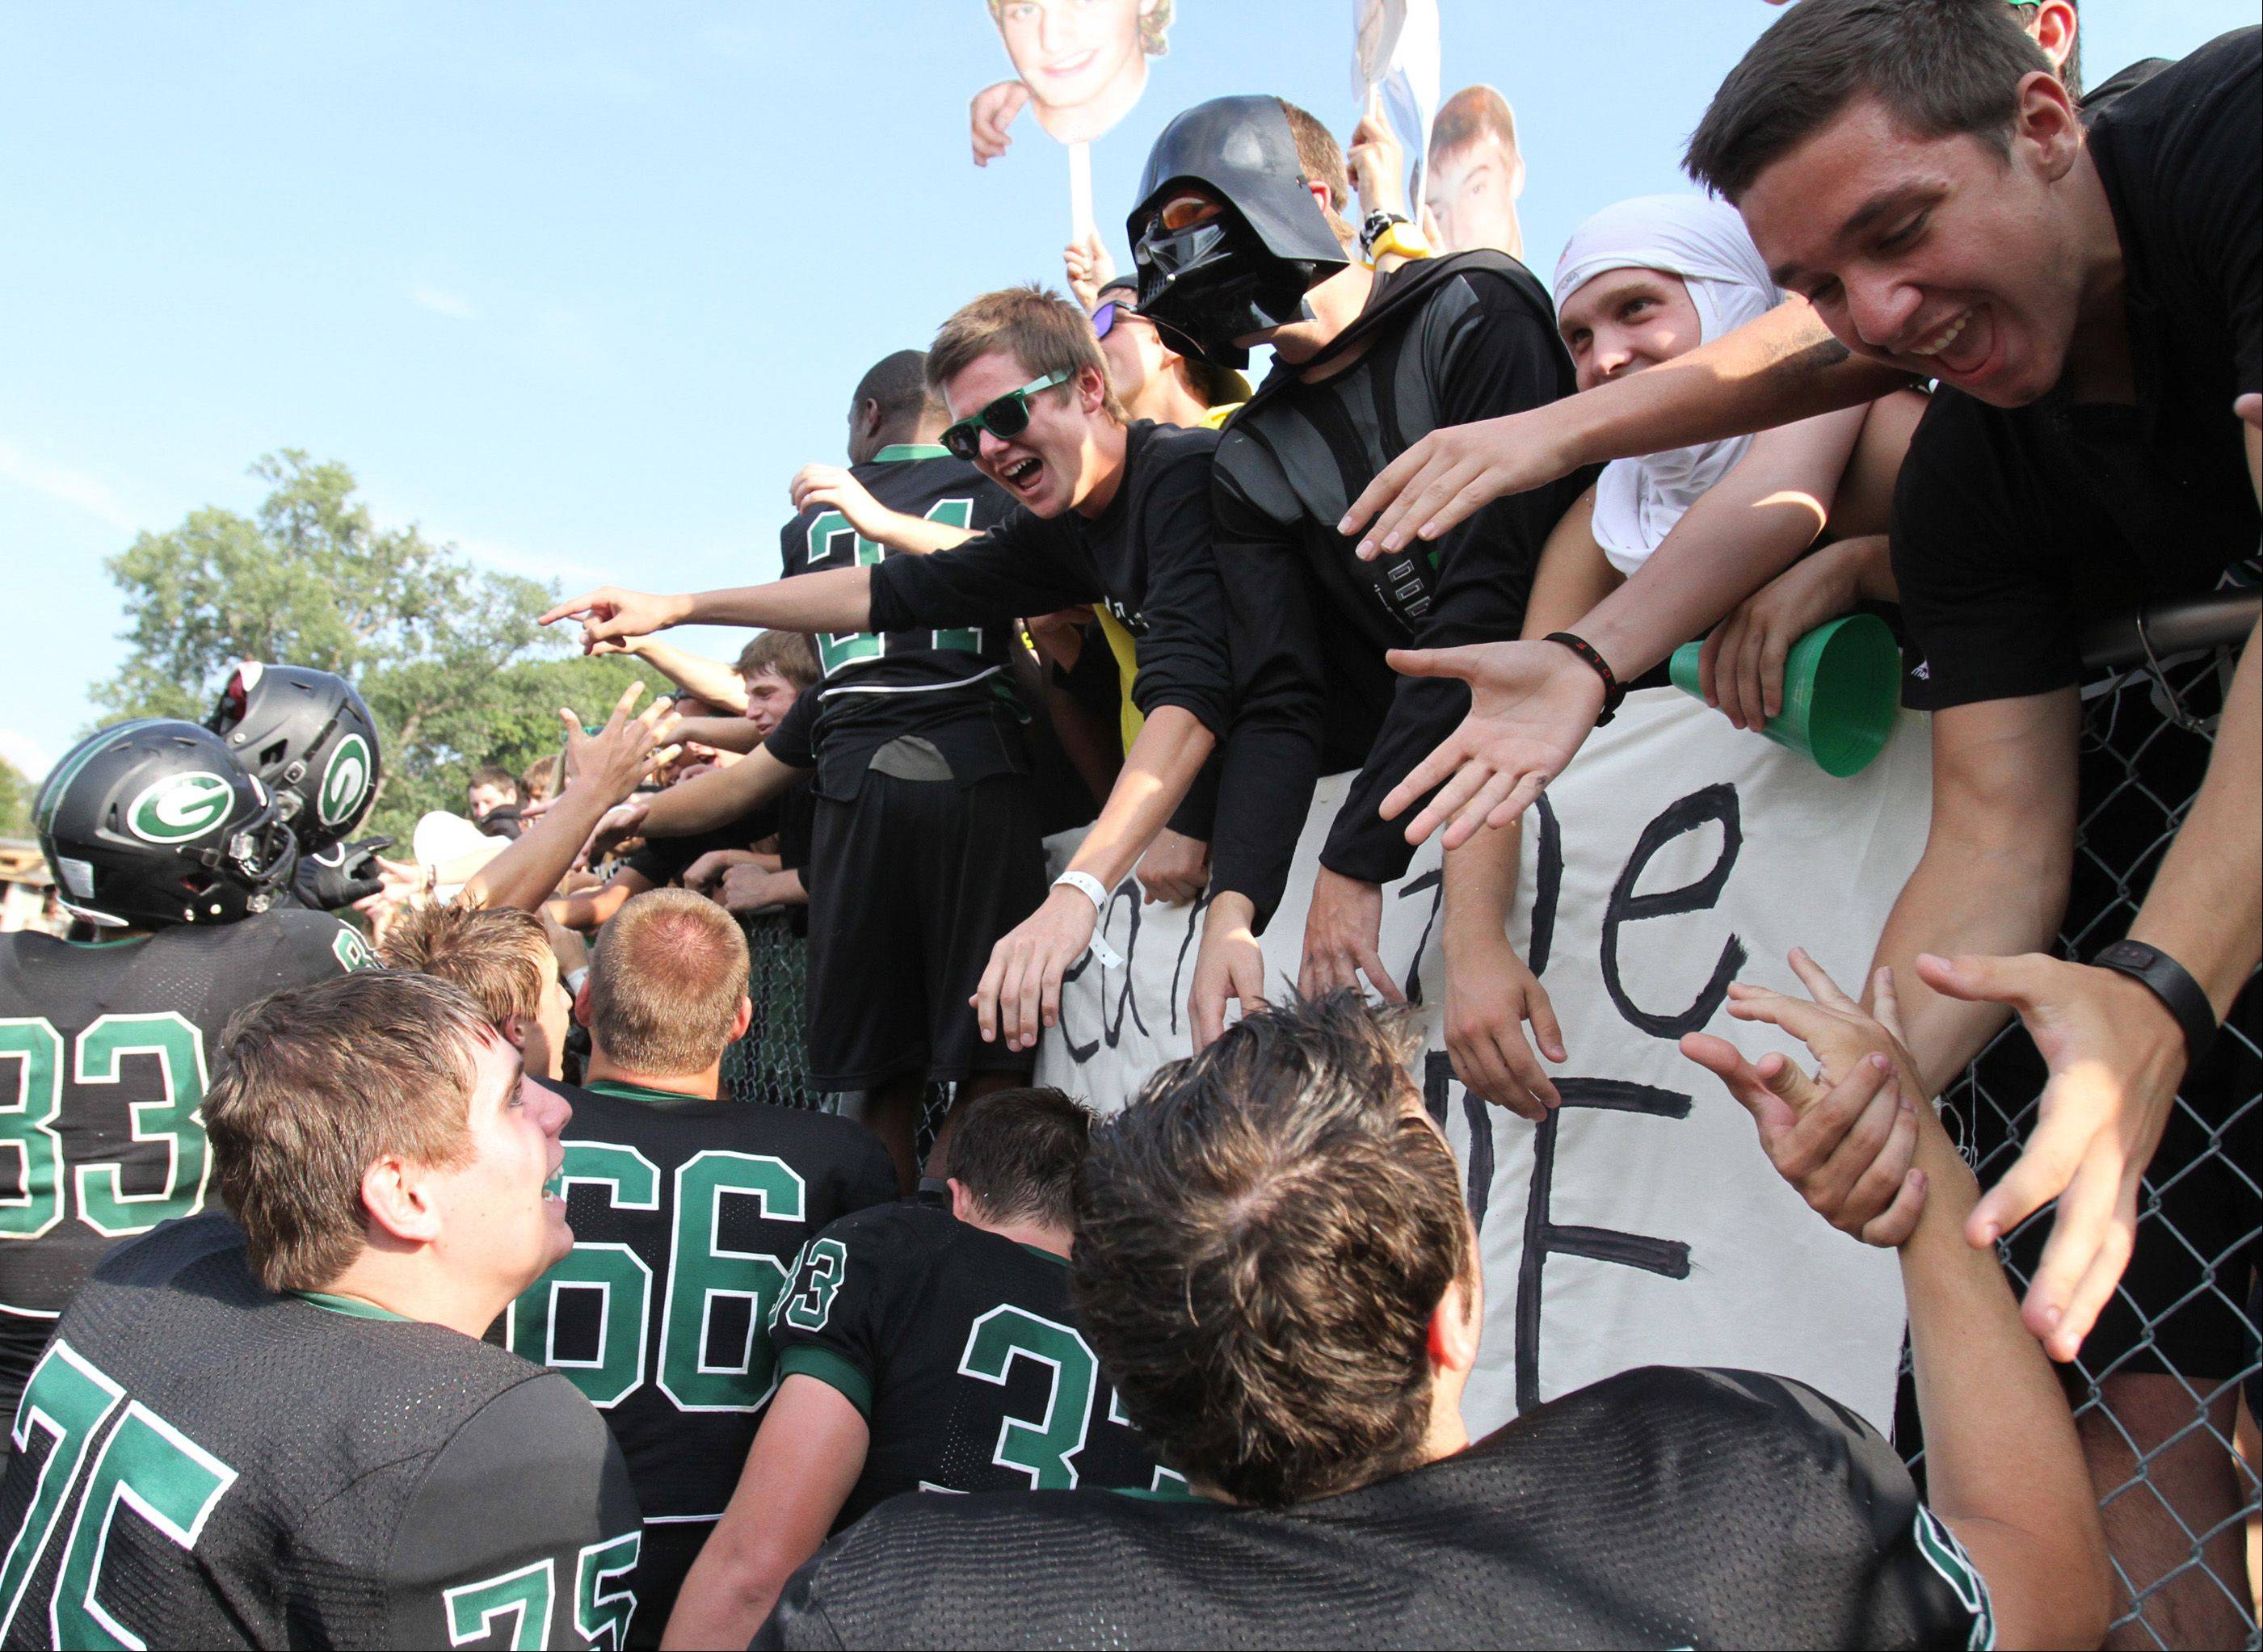 Glenbard West fans celebrate a victory with players against Wheaton Warrenville South at Glenbard West on Saturday, August 25.